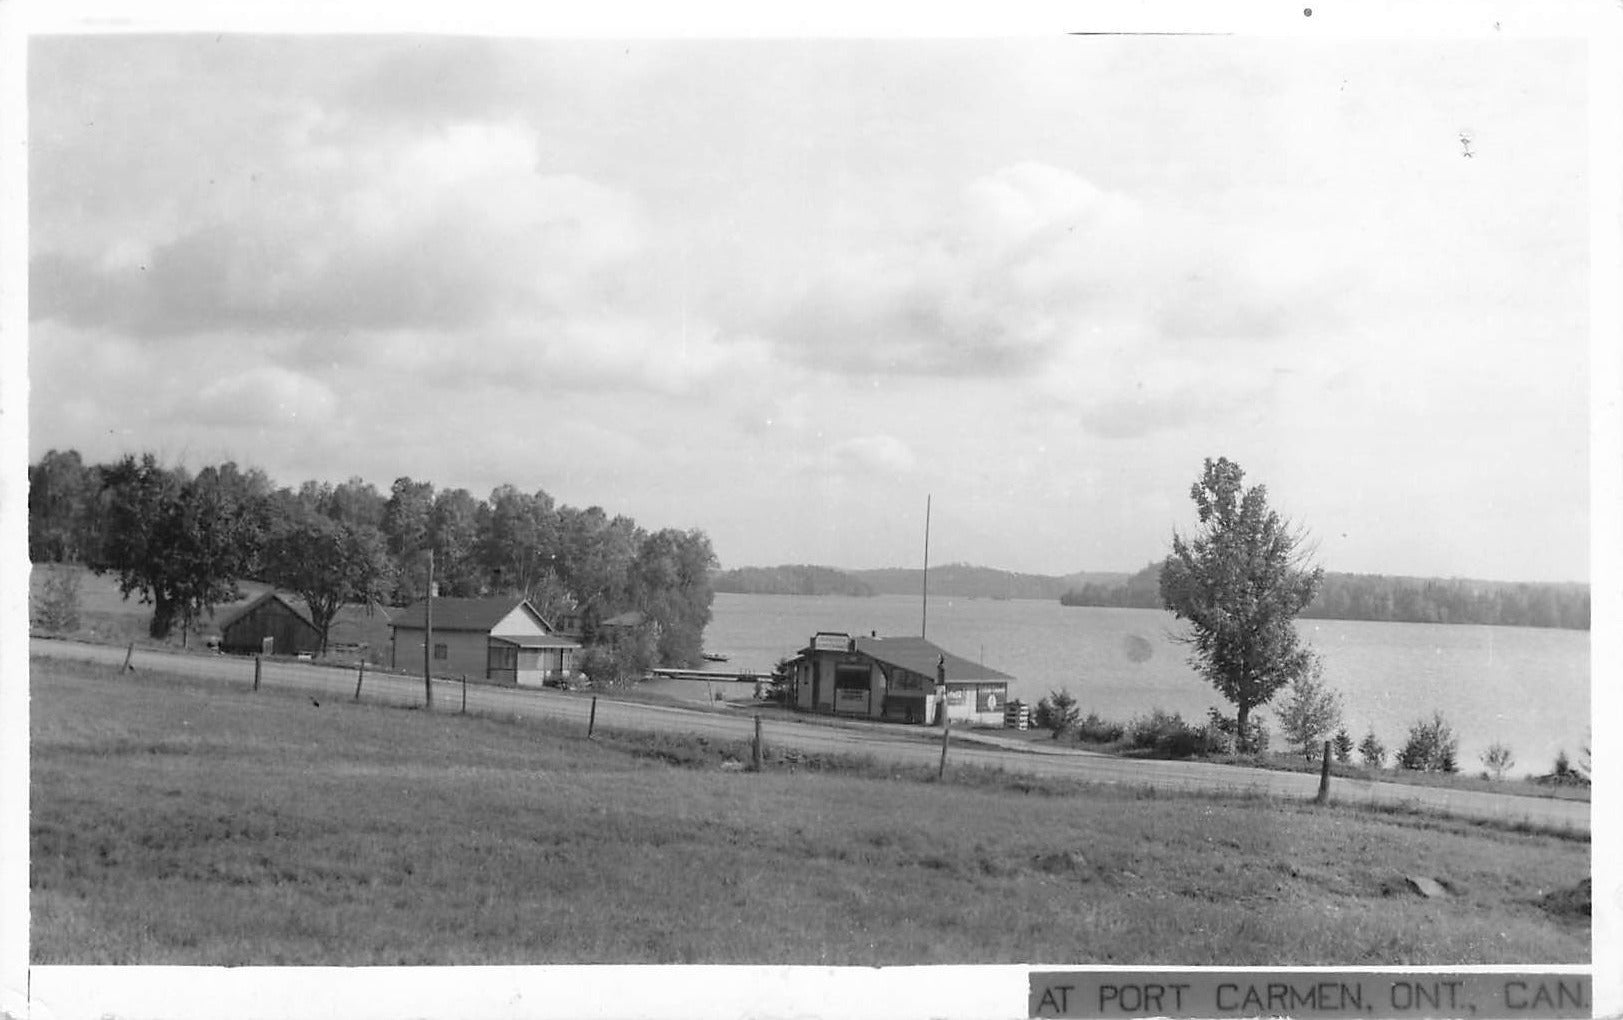 Port Carmen, Ontario. RPPC Postcard. 1944. Lake View. (1908-1951). Canada